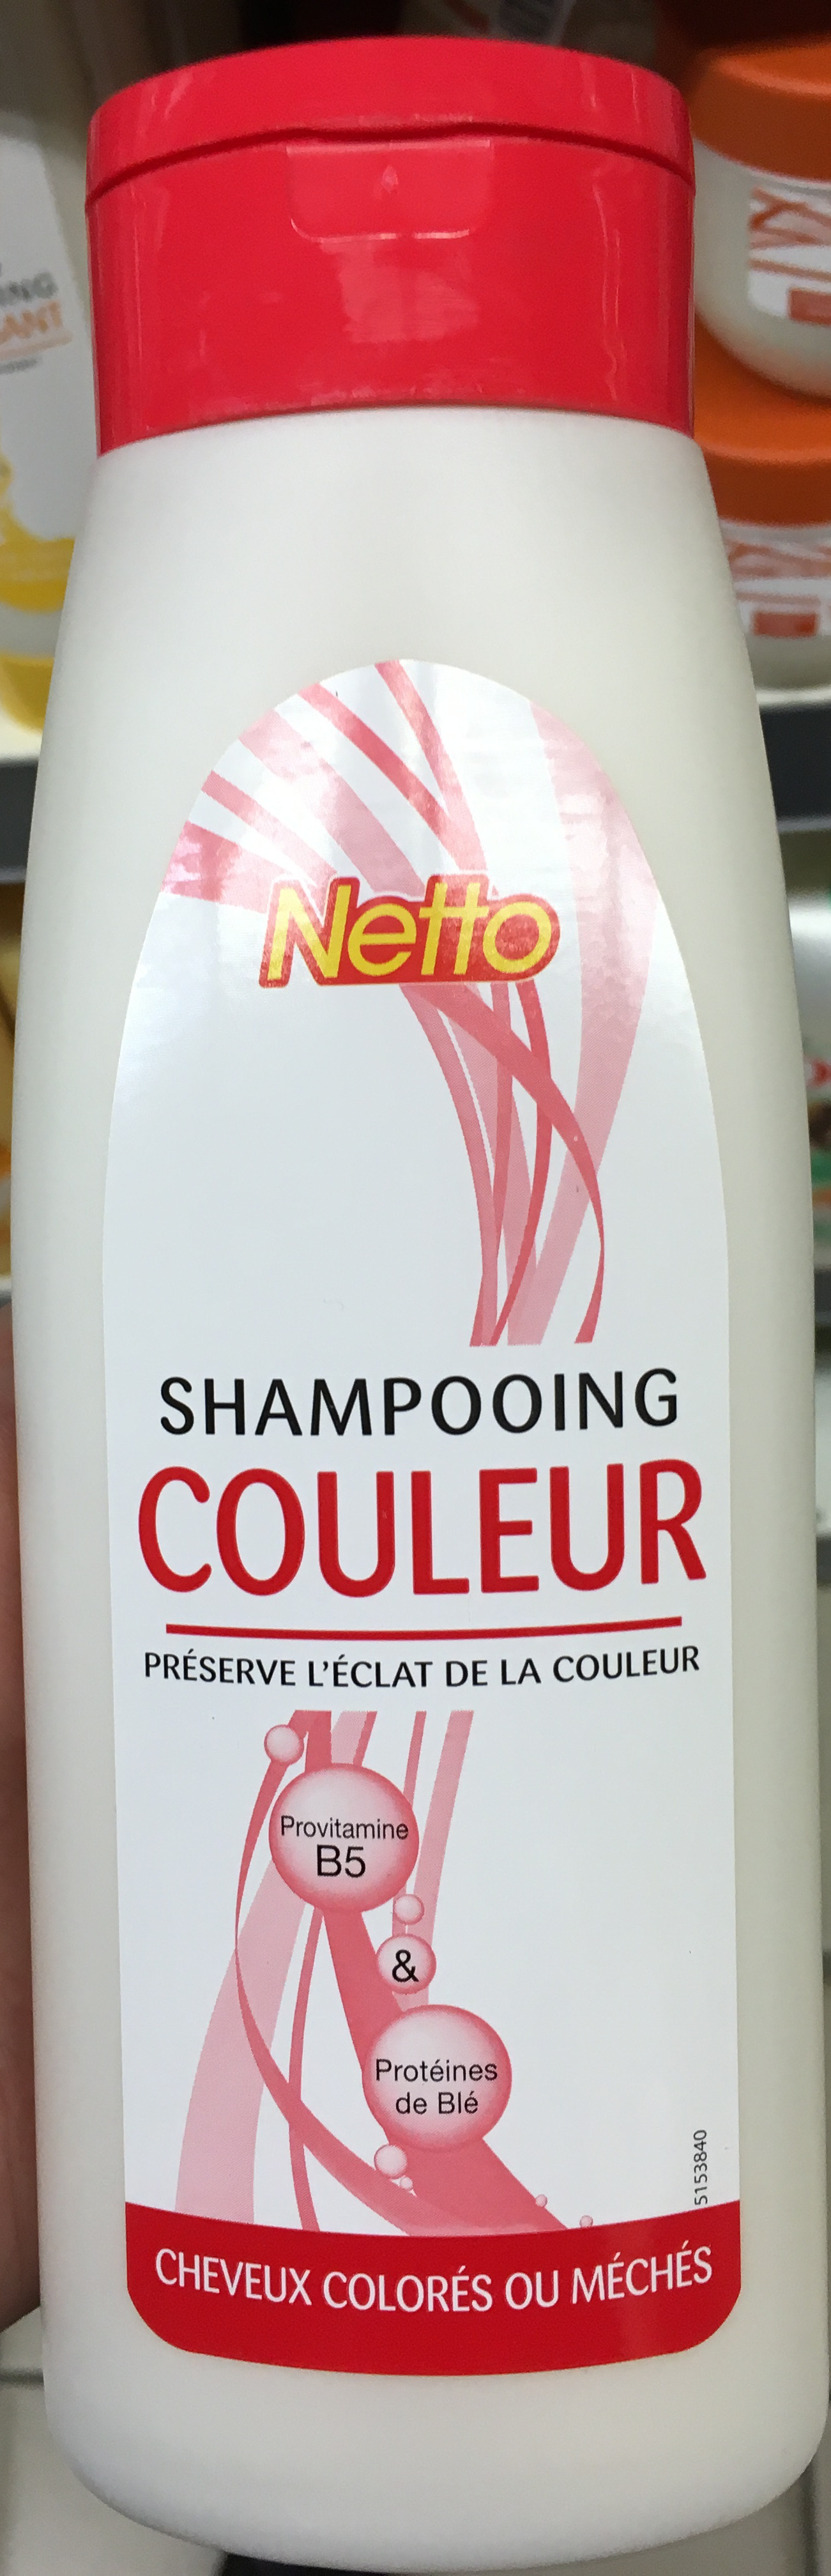 Shampooing Couleur - Product - fr